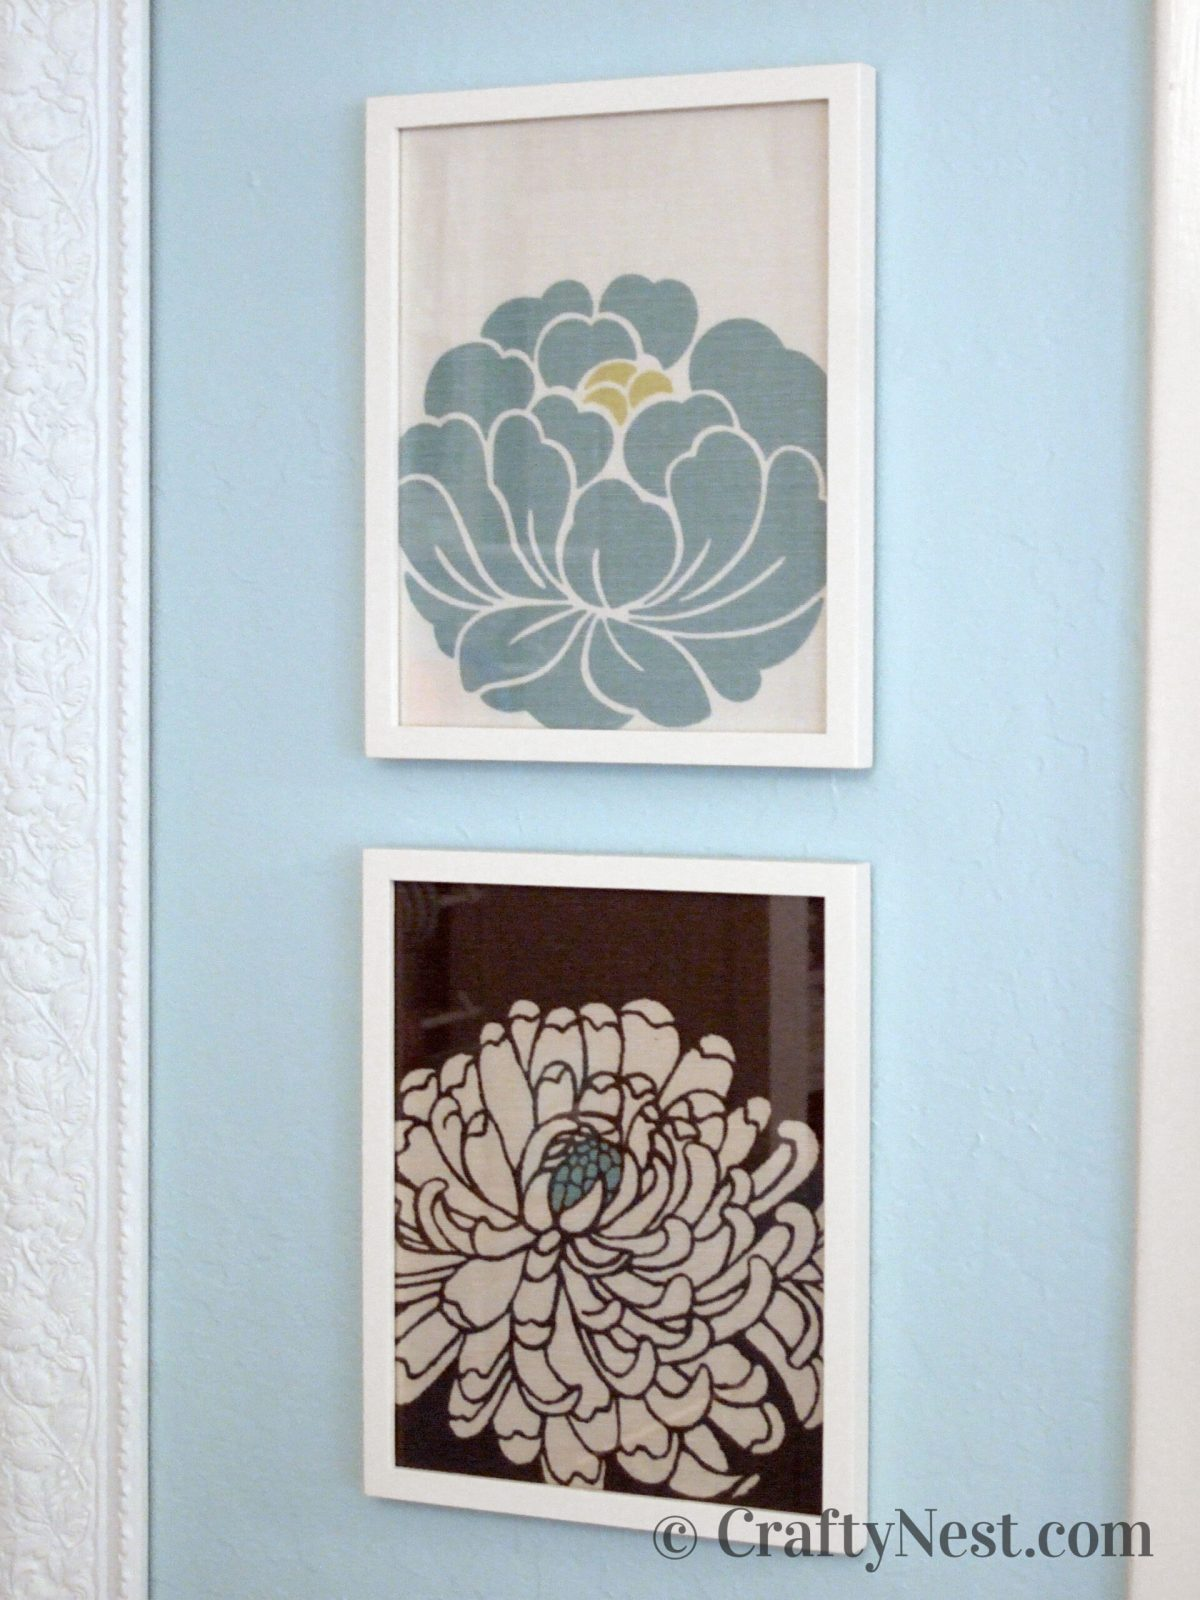 Framed flowers, photo